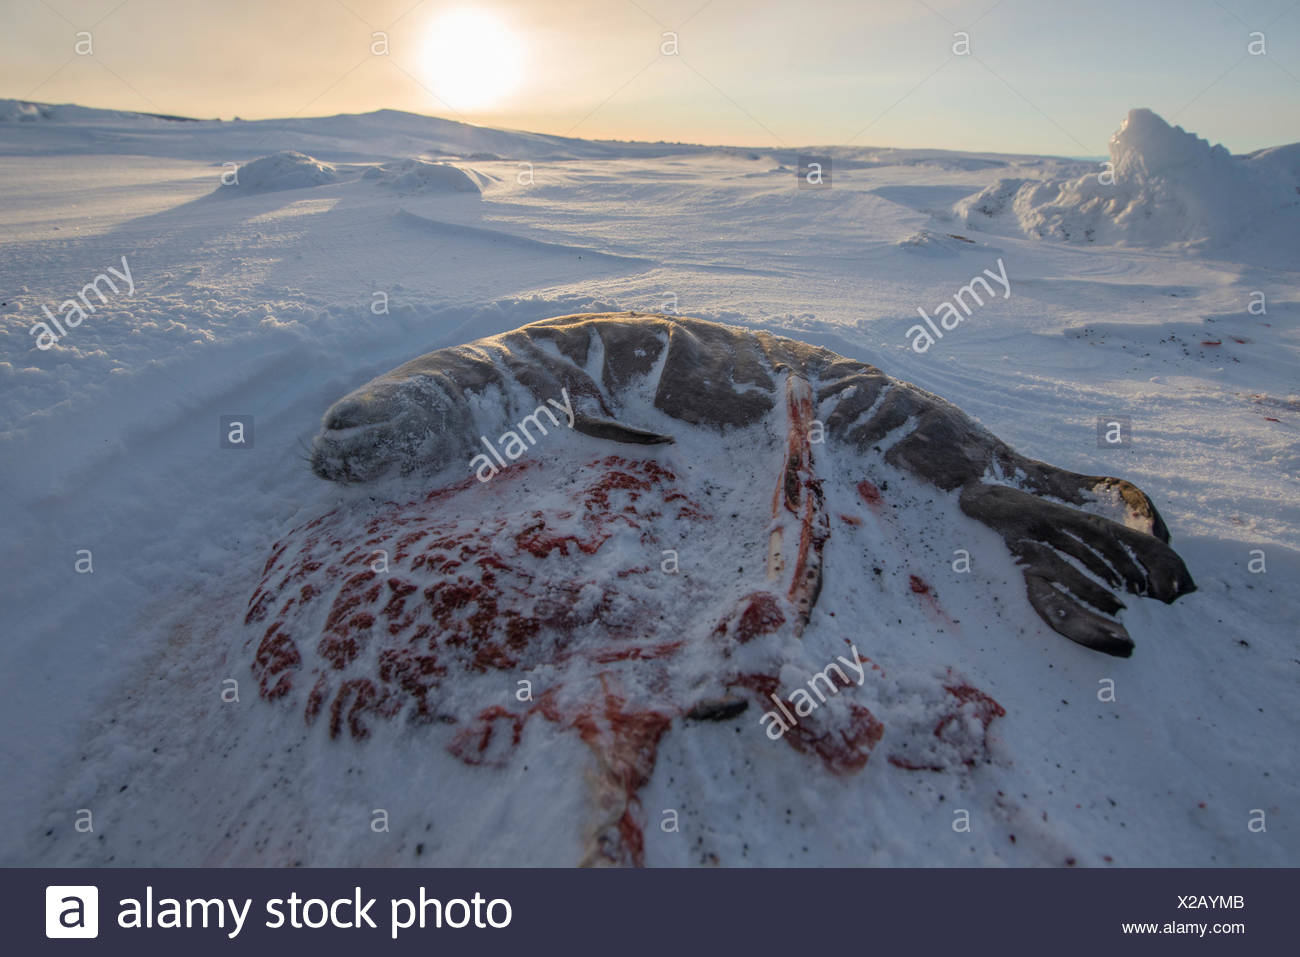 Weddell seal fetus and placenta on the surface of the Ross Sea. - Stock Image